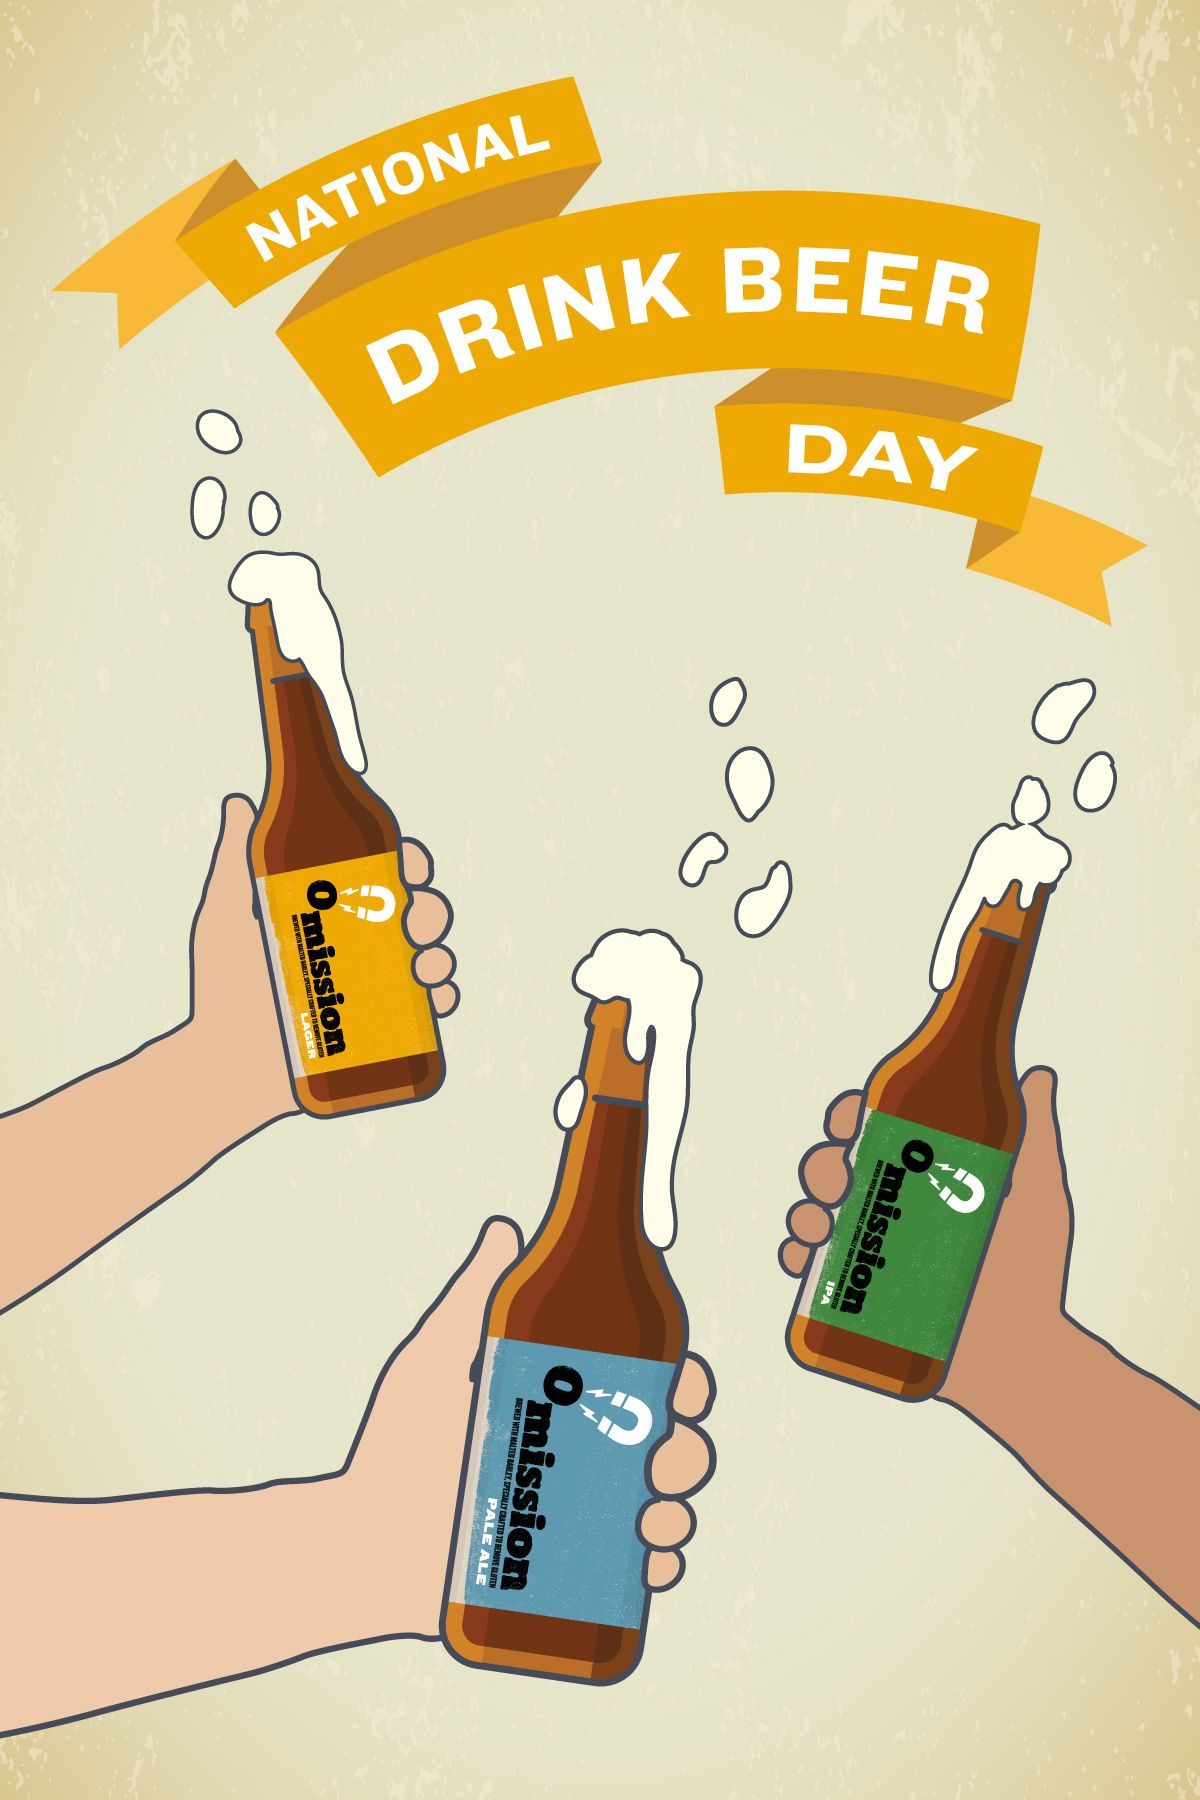 Happy National Drink Beer Day Time To Celebrate With A Refreshing Craft Brew National Drink Beer Day Beer Day Craft Brewing